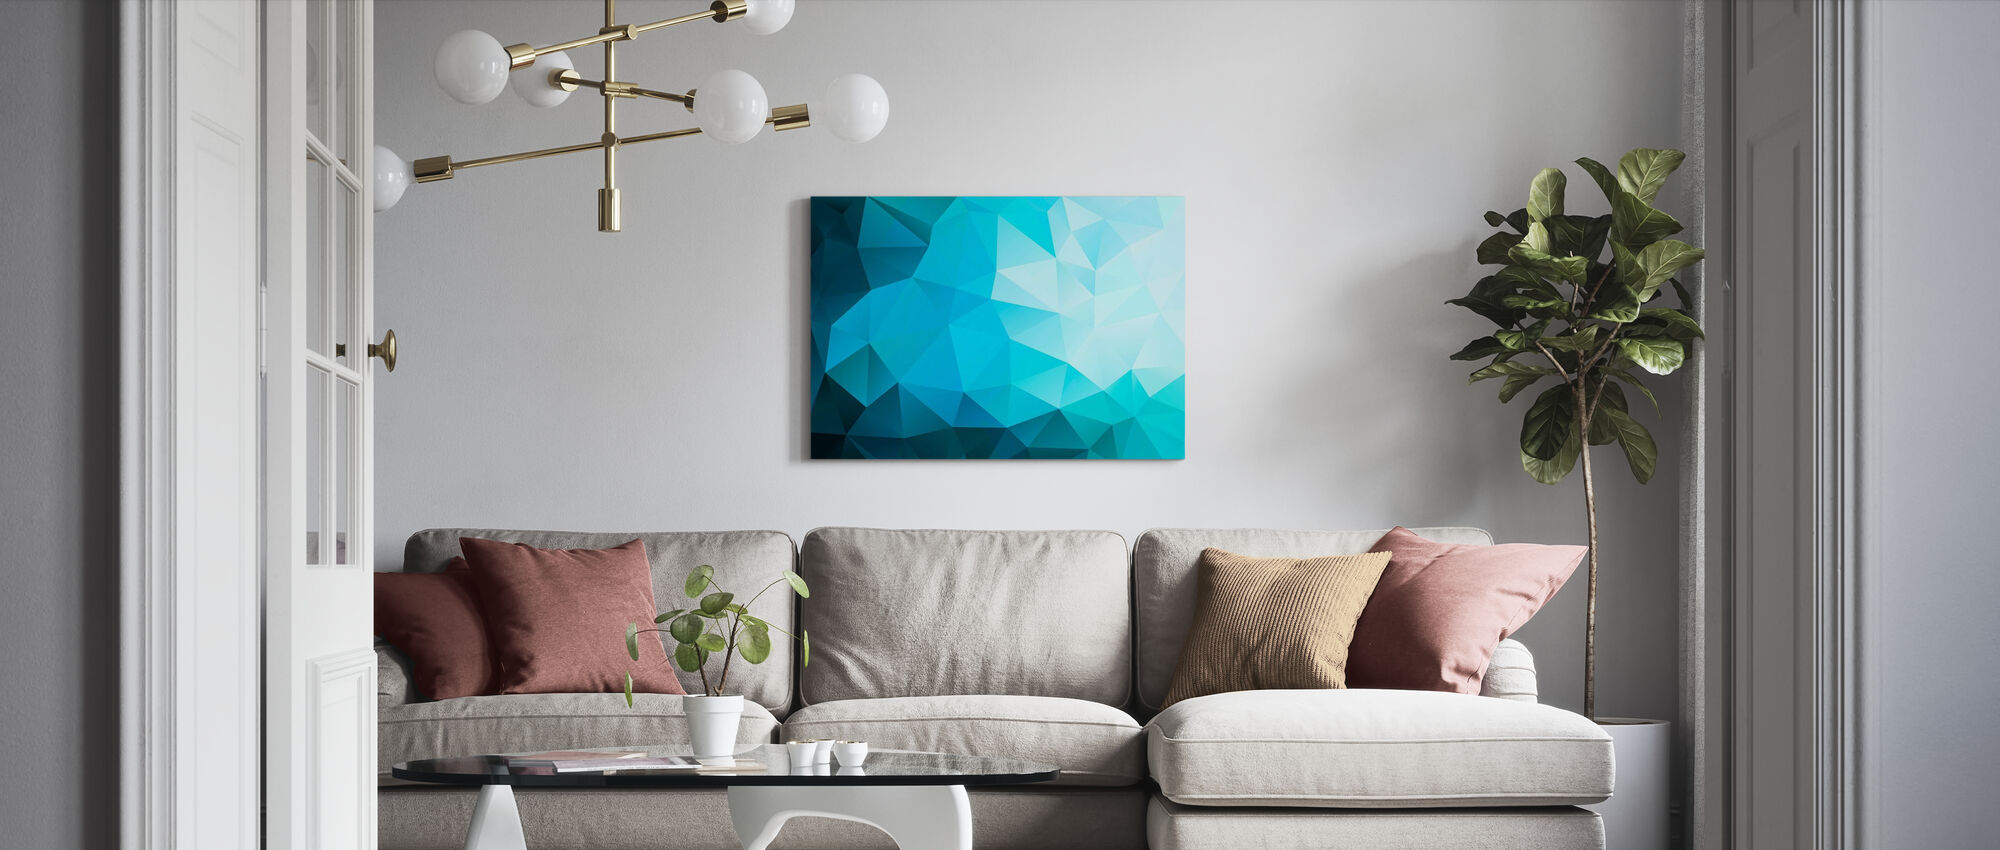 Blue Polygonal - Canvas print - Living Room